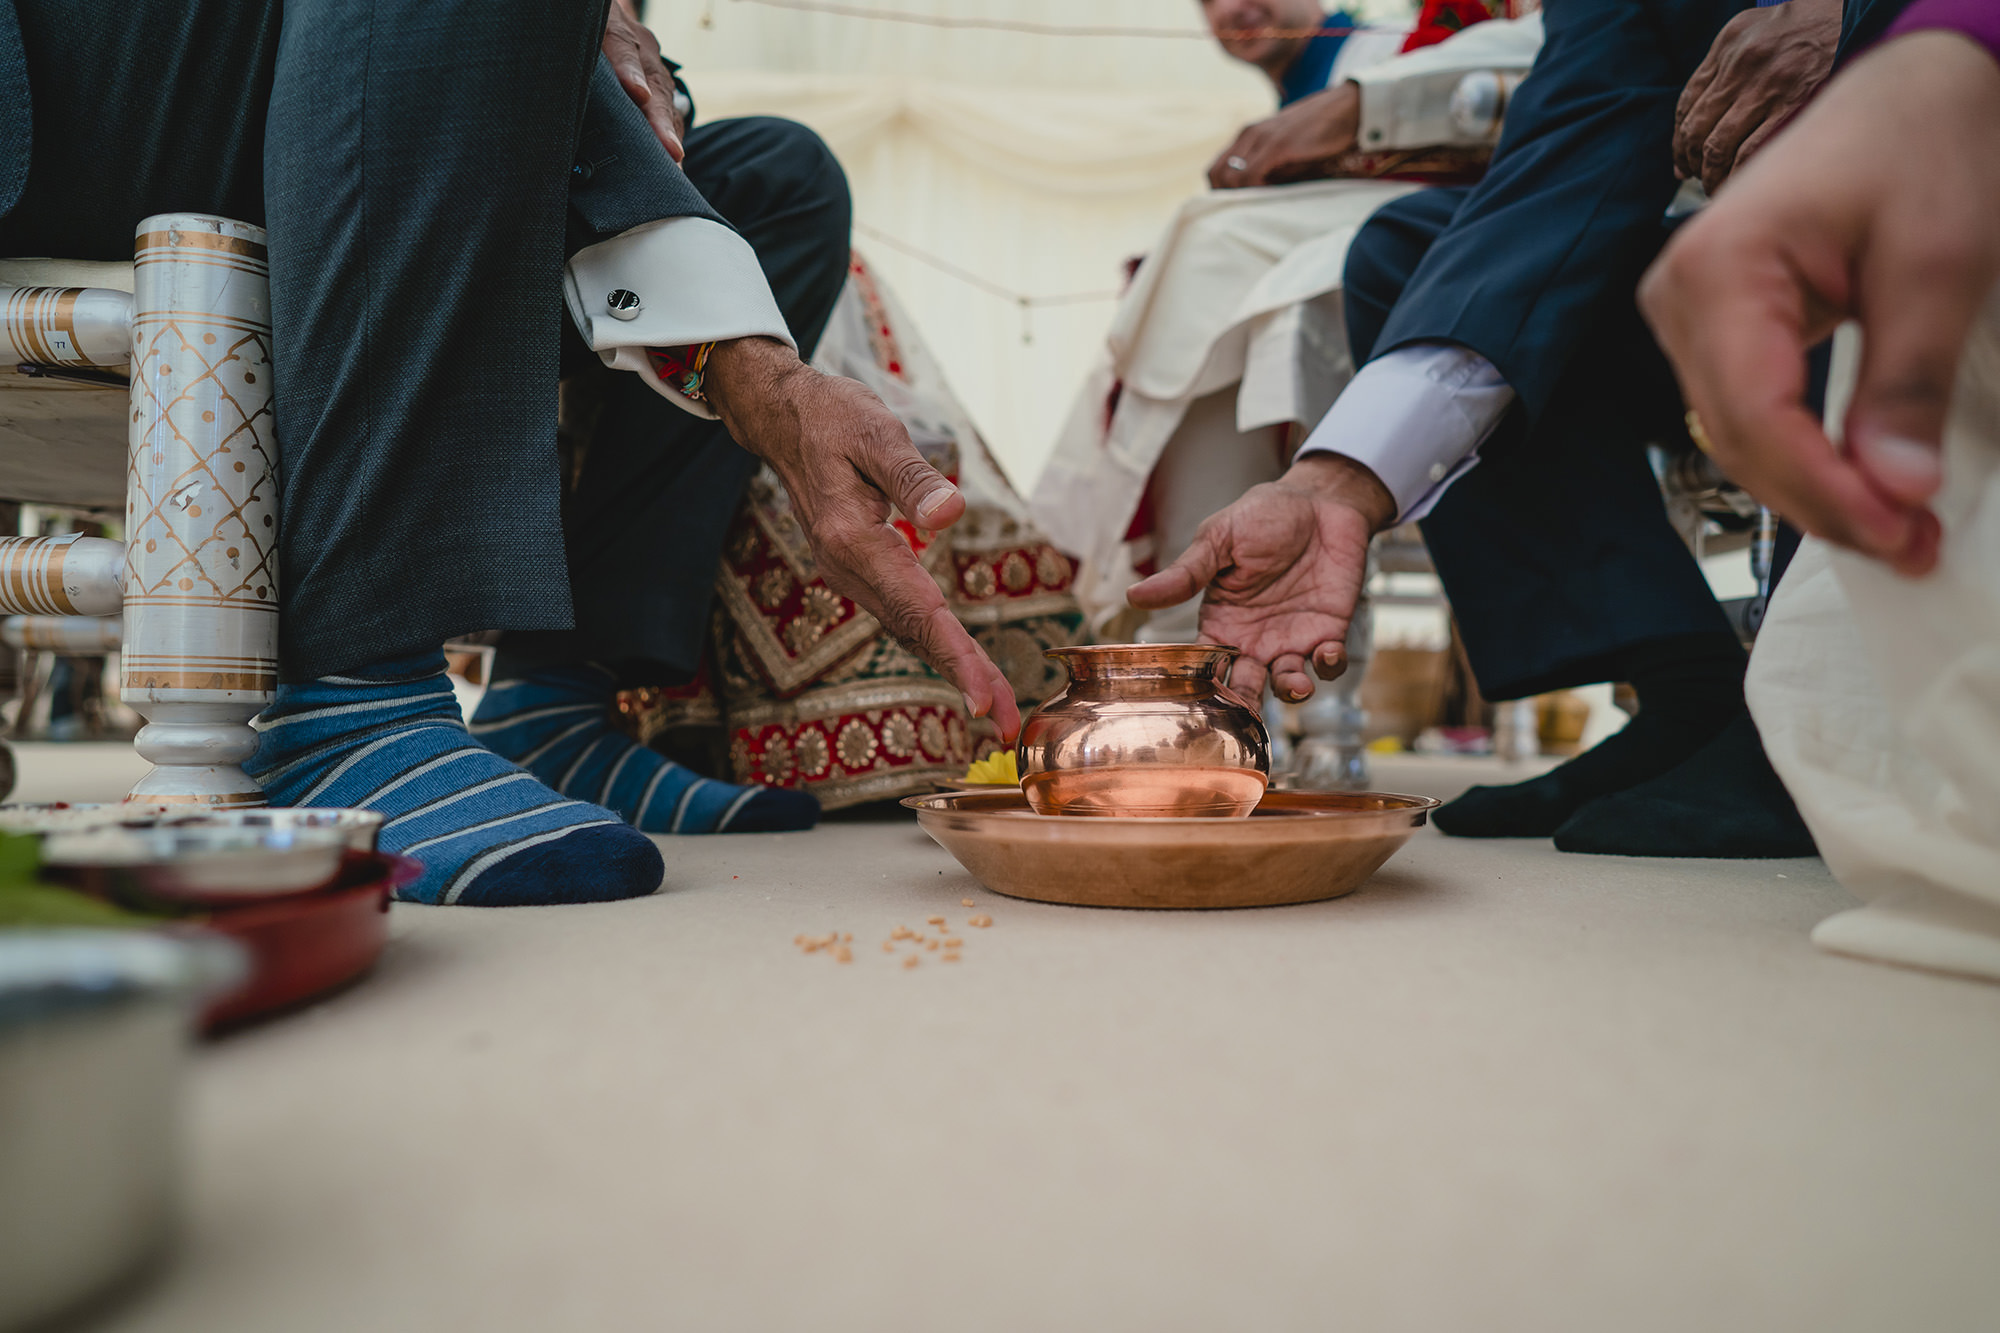 hindu wedding ceremony rituals with fathers of bride and groom